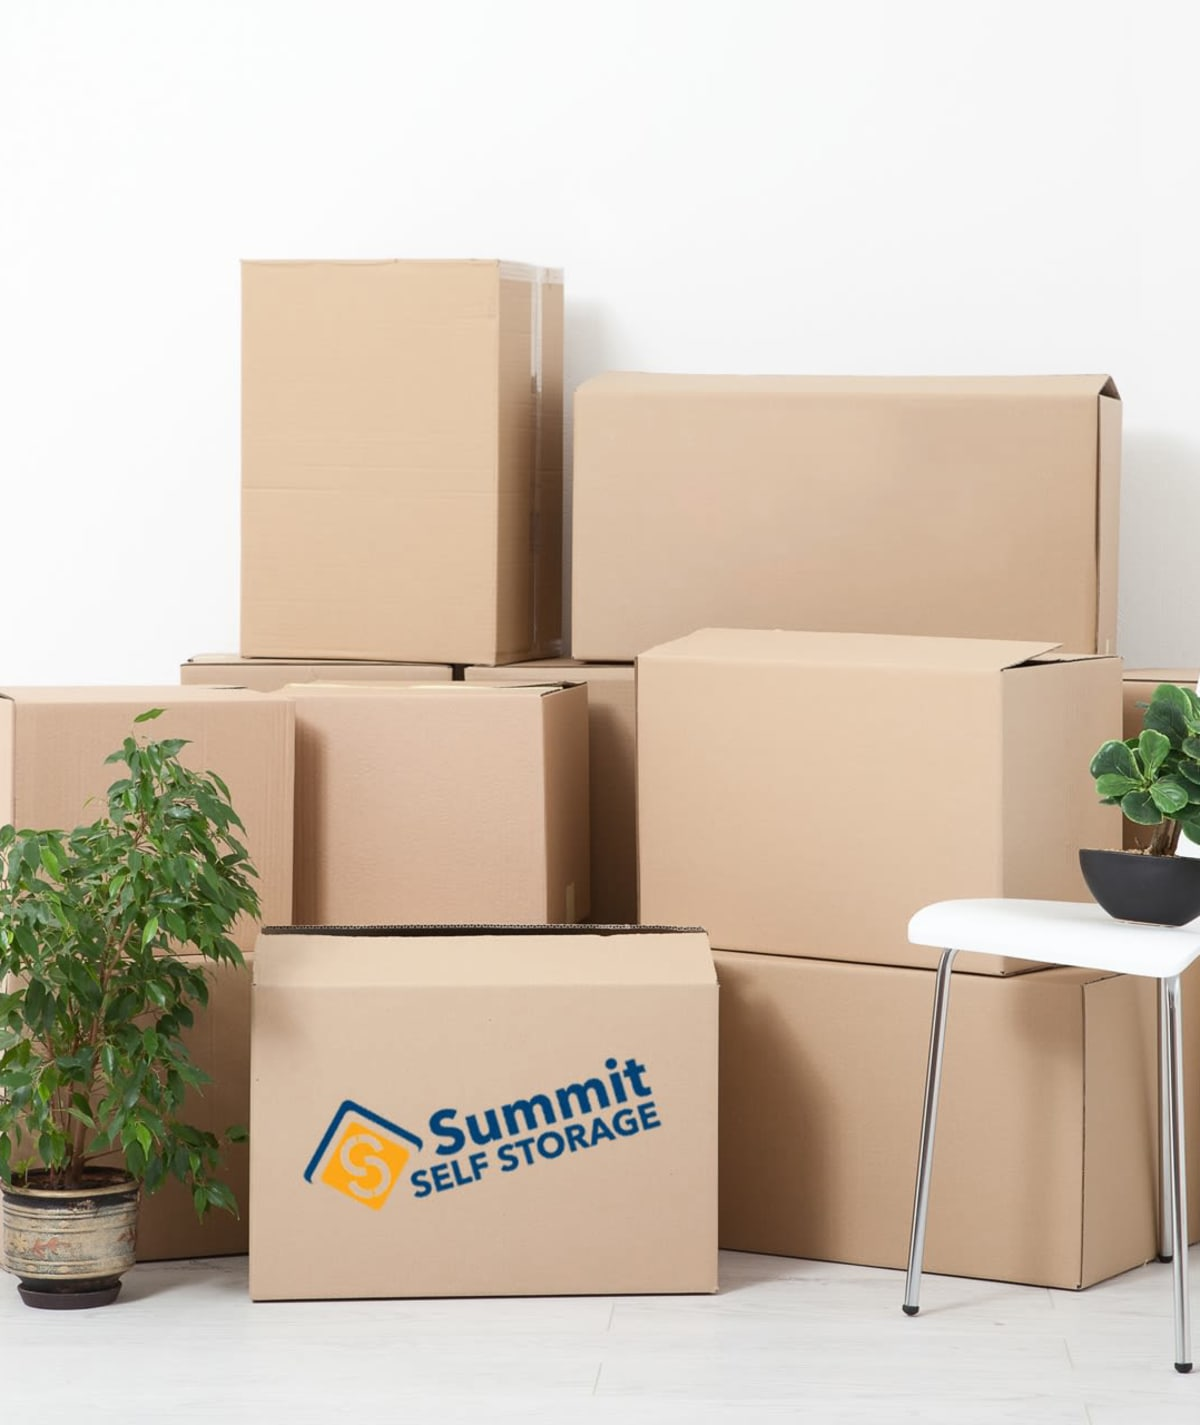 Summit Self Storage - Chapel Hill storage units for rent in Akron, Ohio